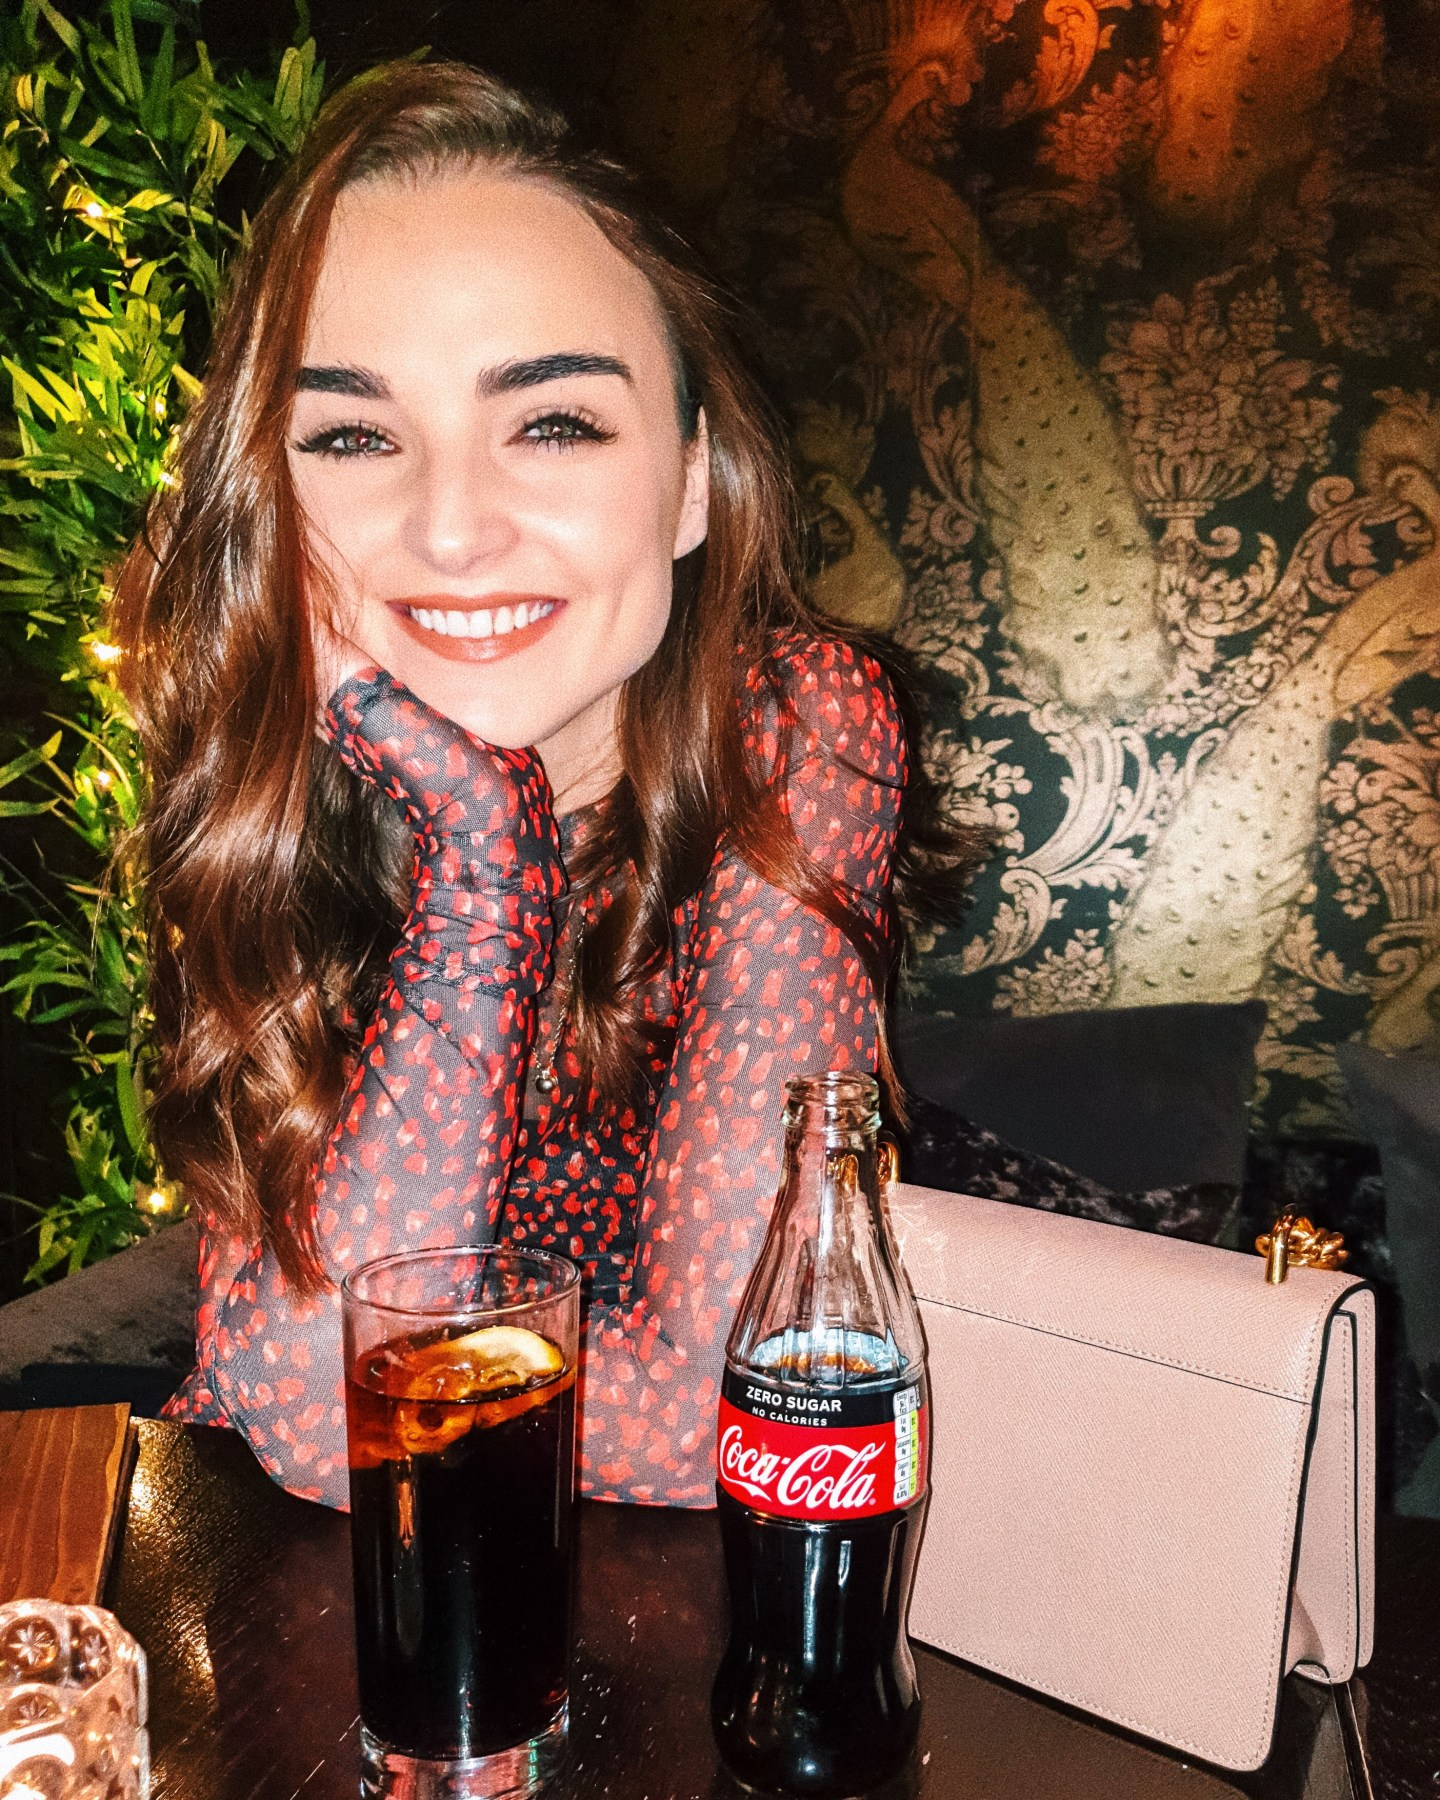 Driving Home for Christmas with Coca-Cola